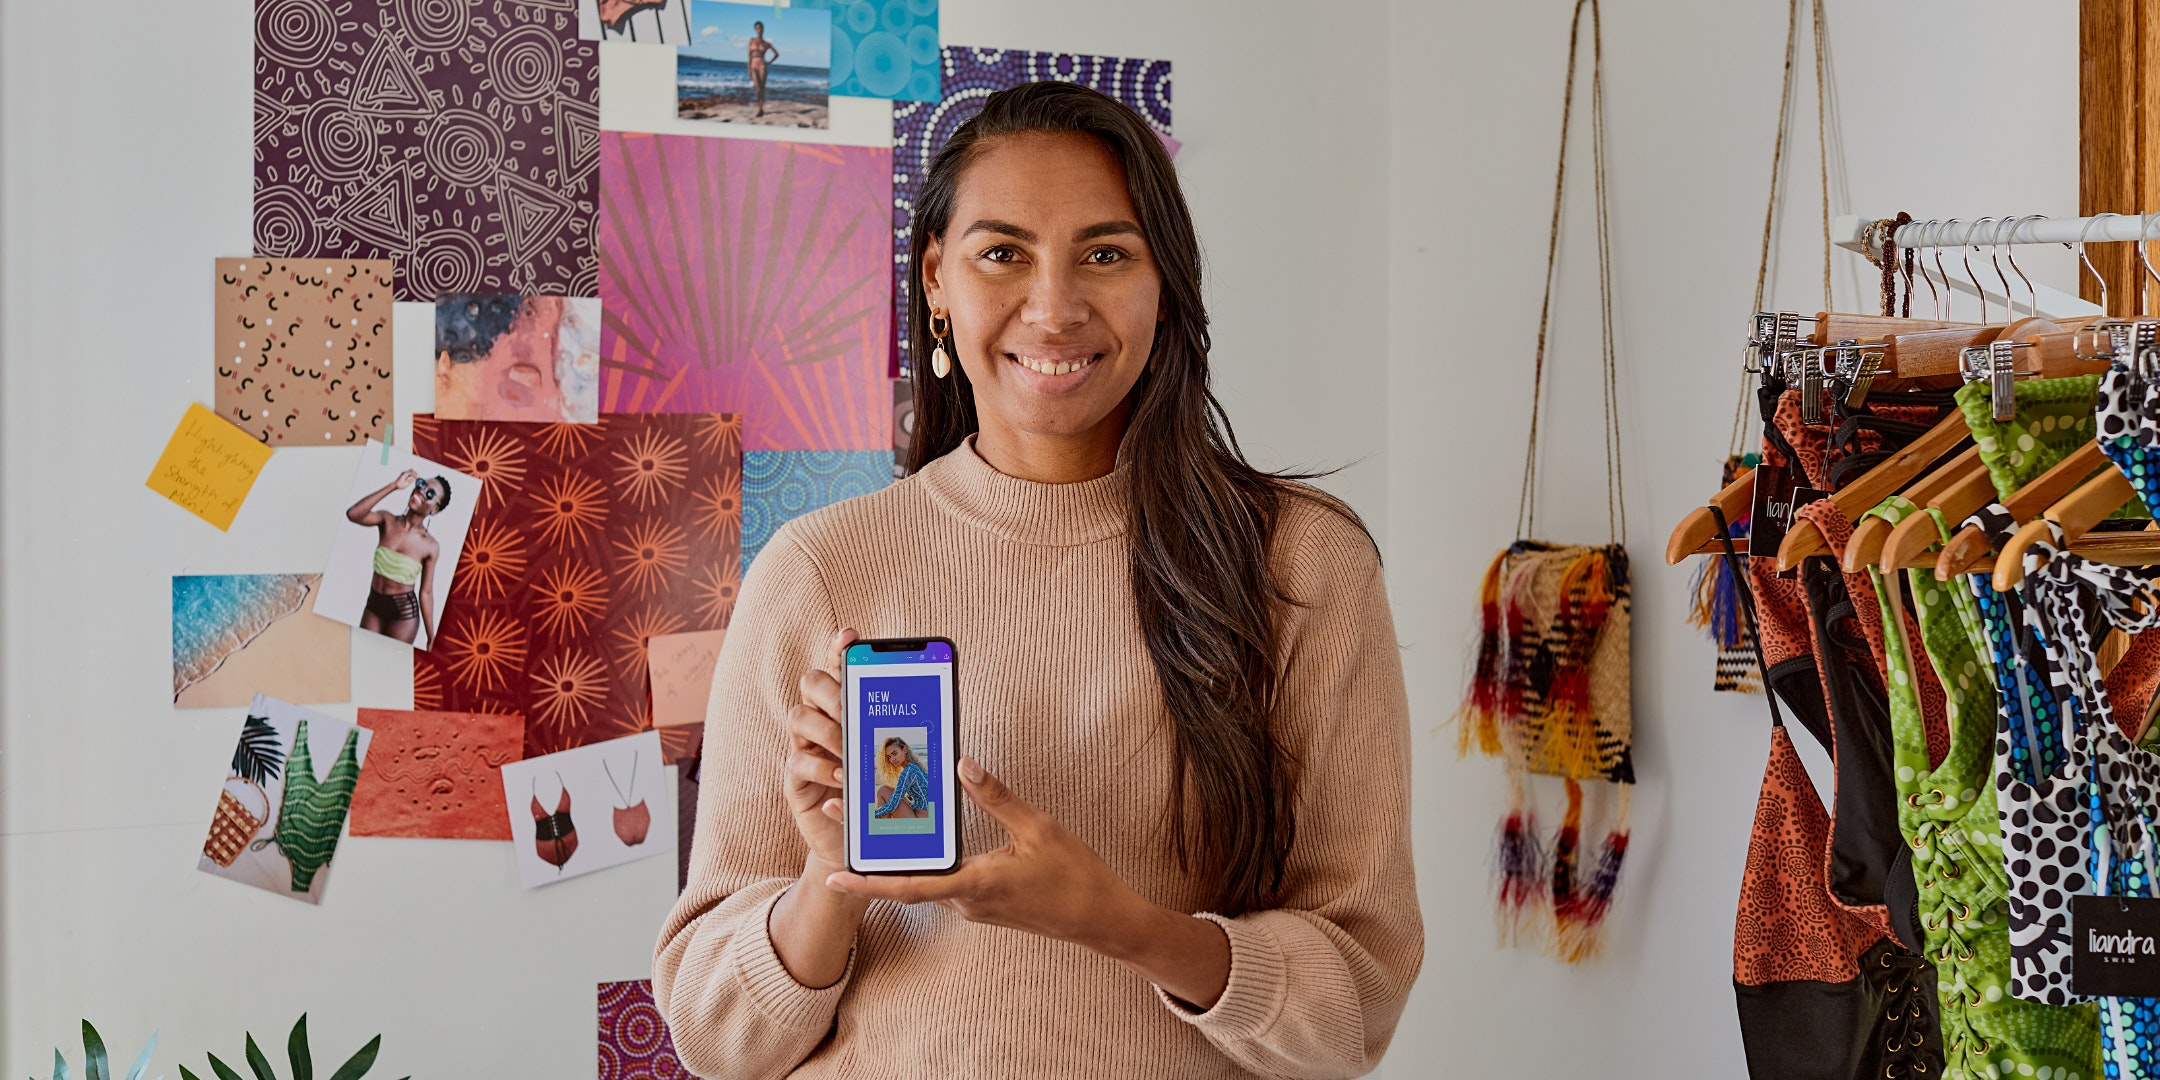 Mobile Entrepreneurs: Running a Business from your Phone